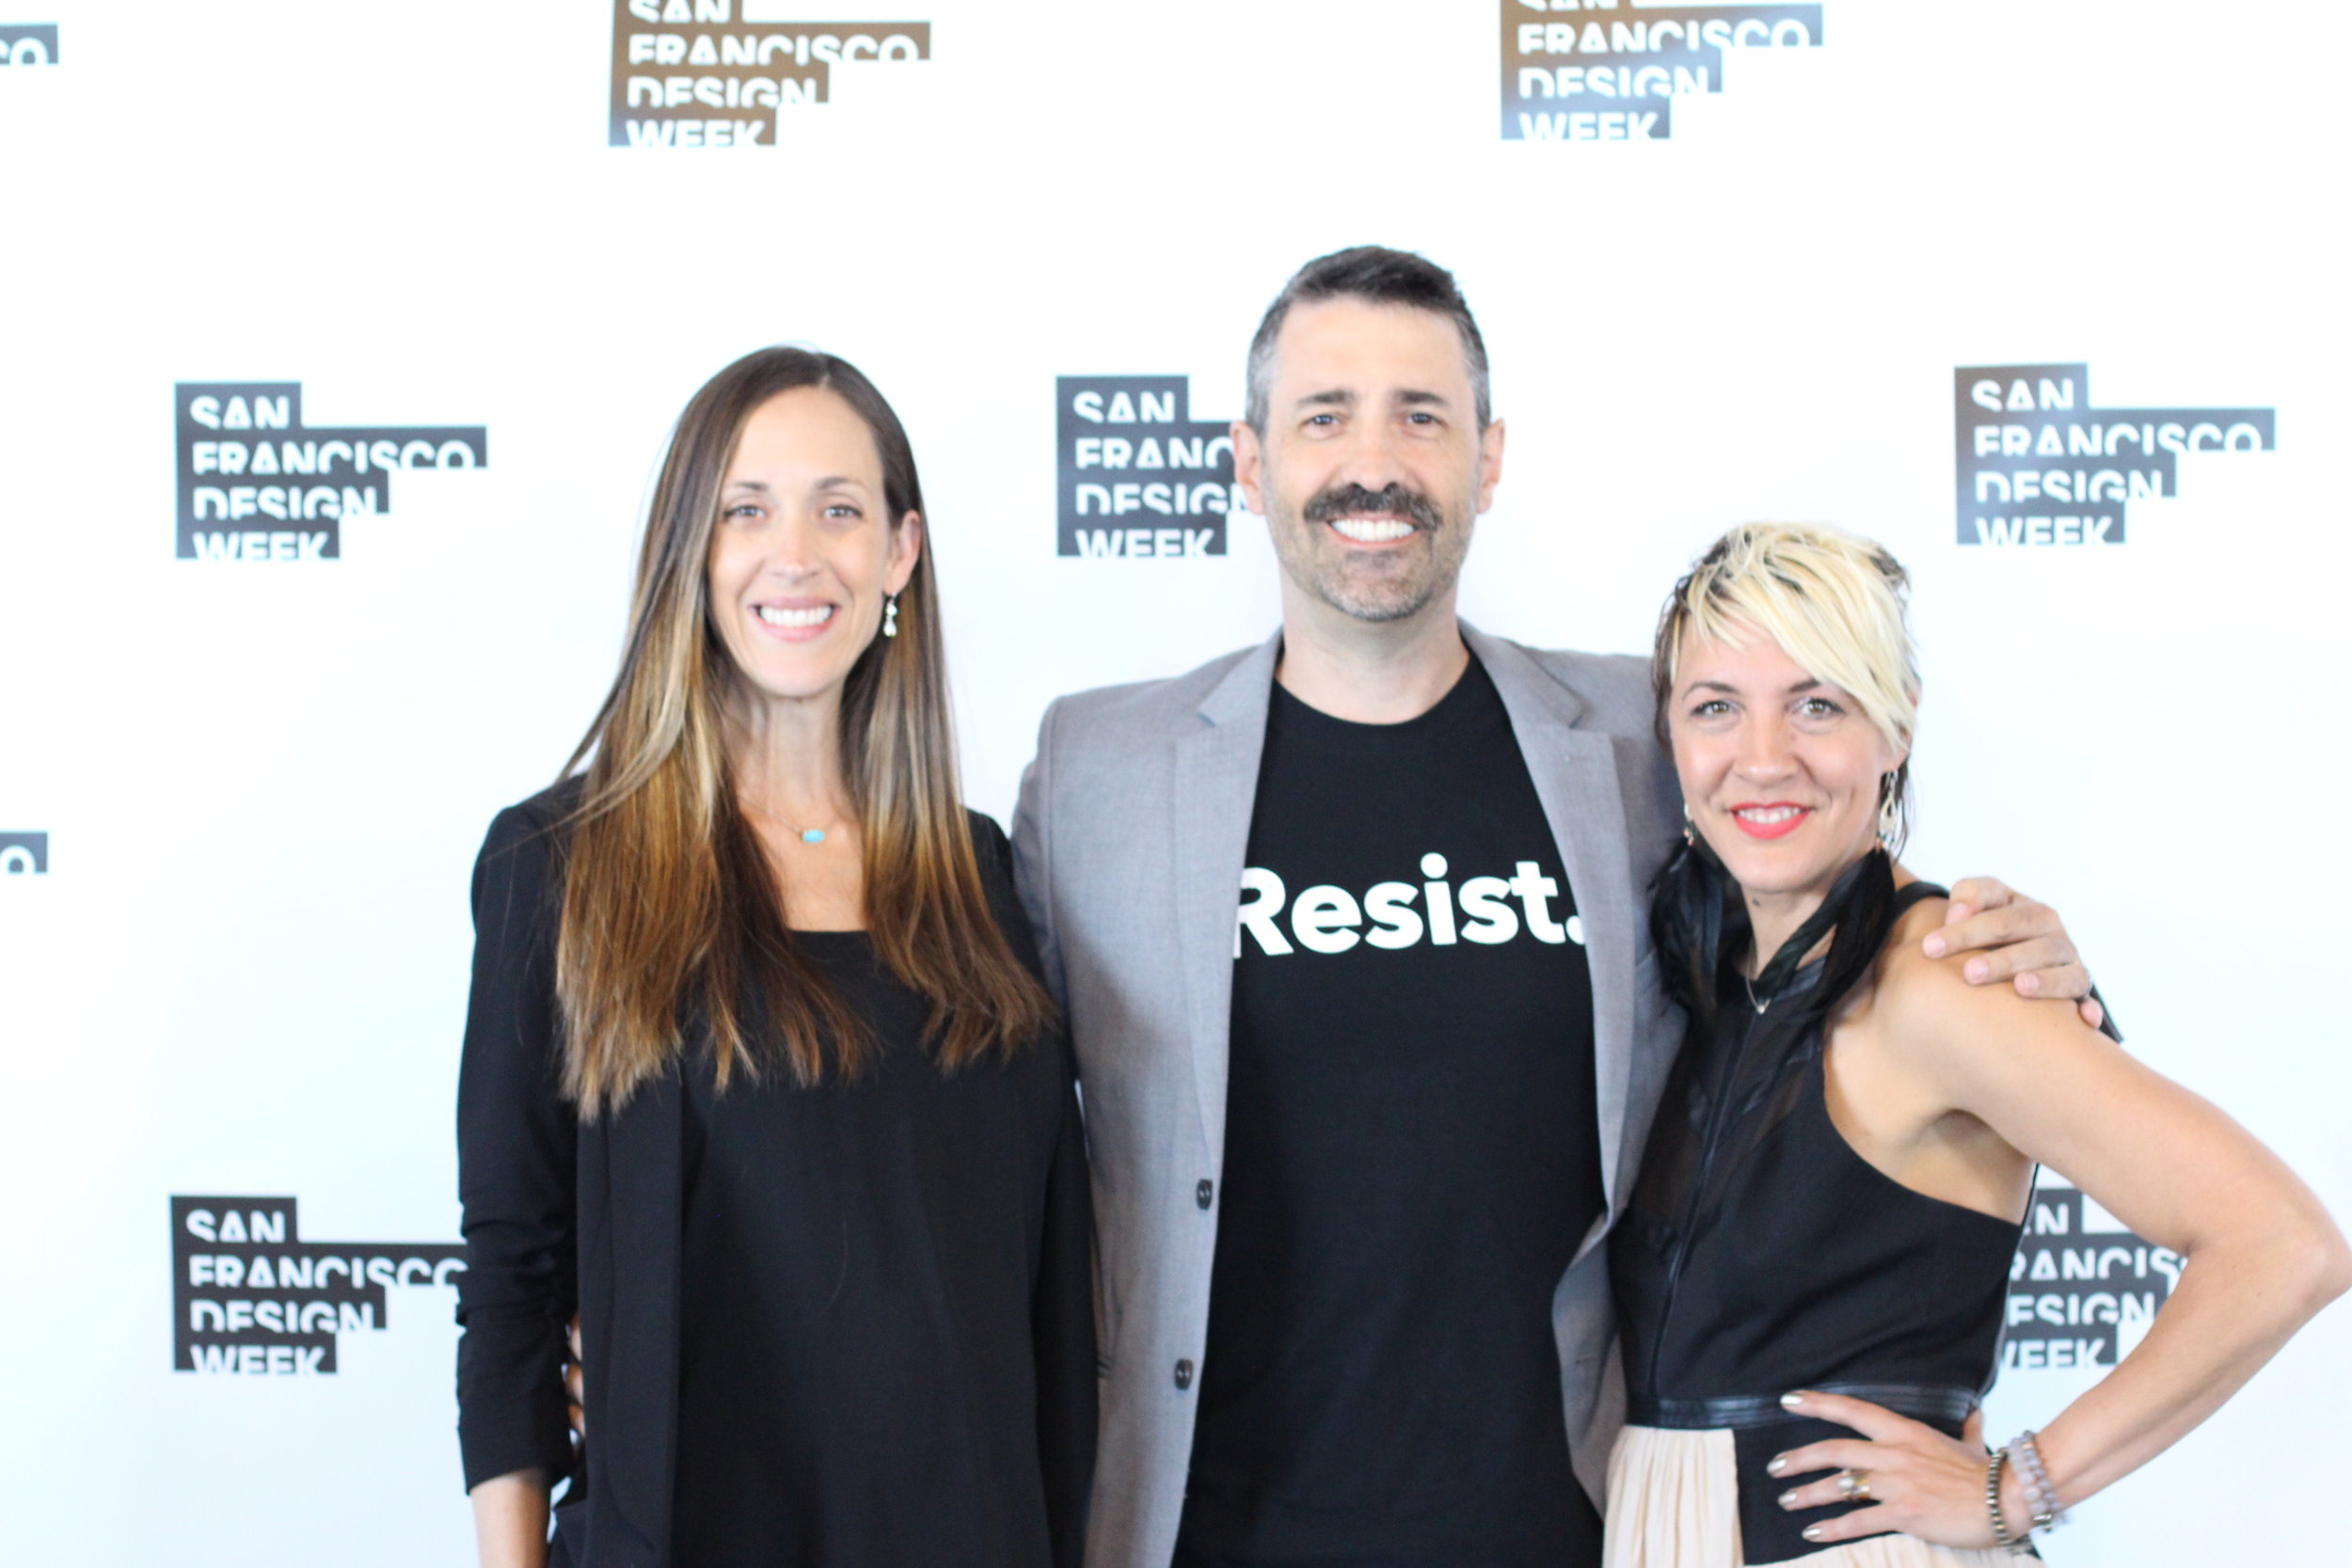 Christine and Chris Nunes from Heavy Projects, with Paige Loczi